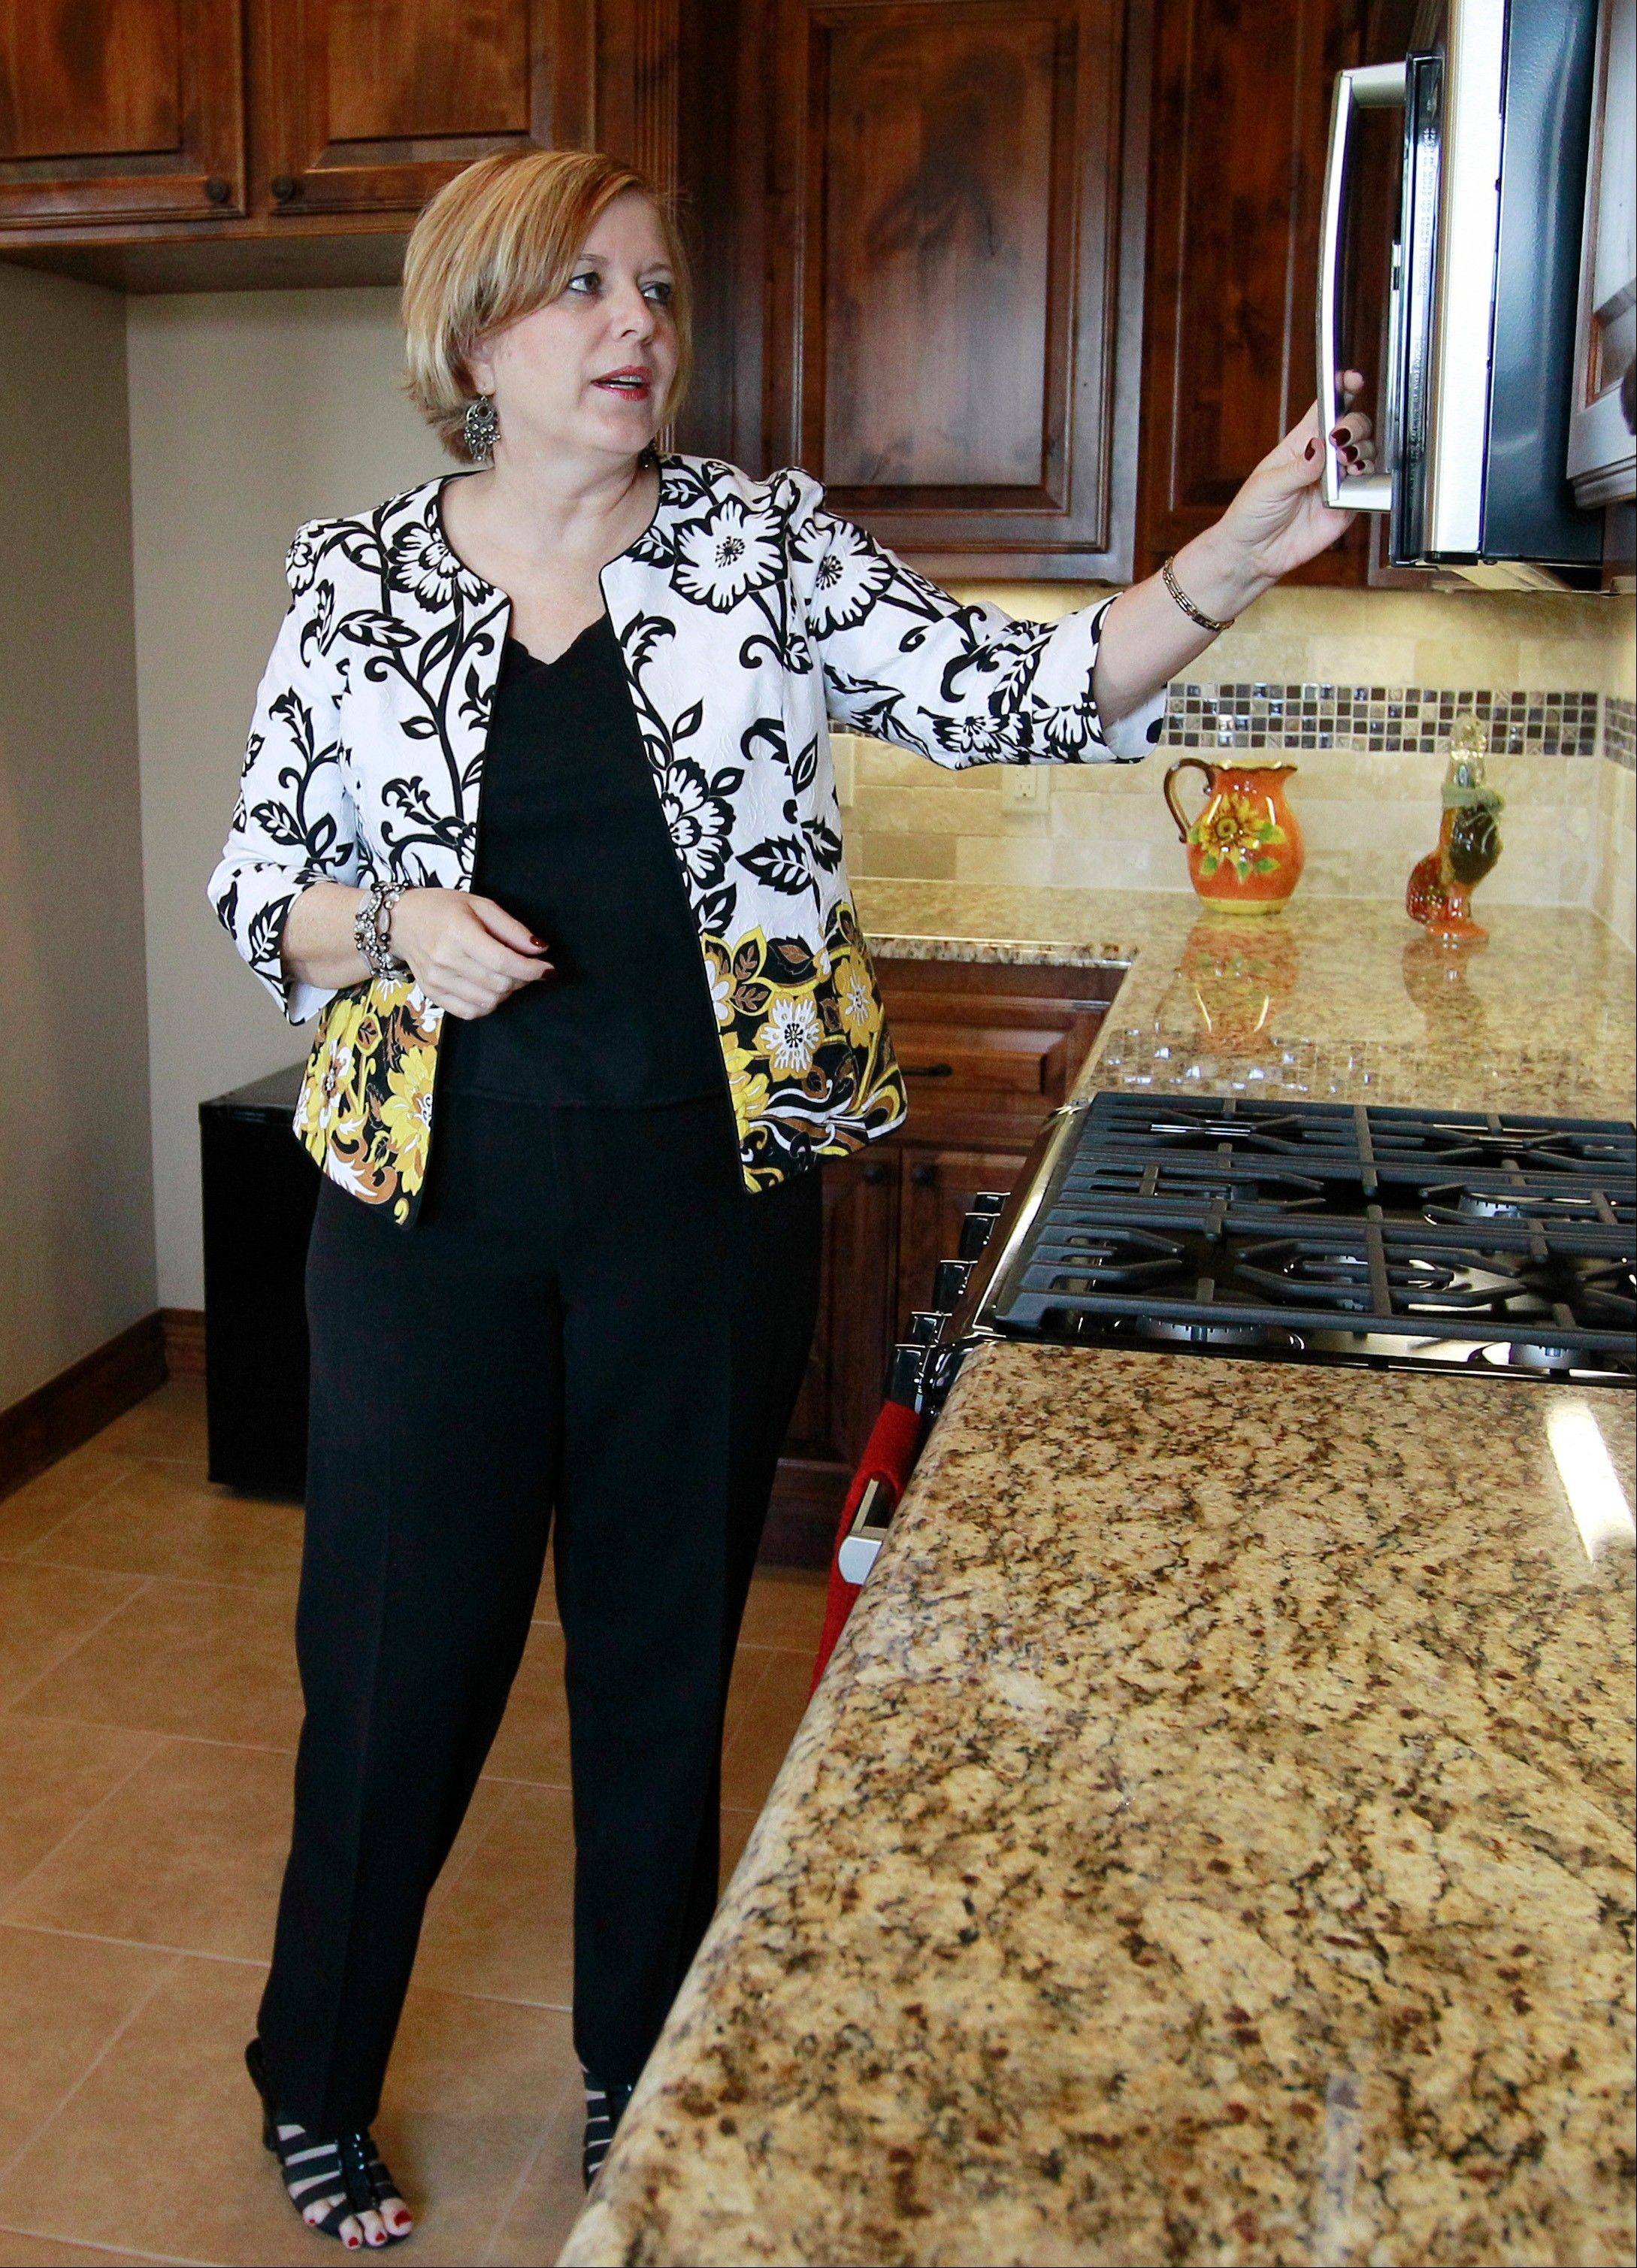 Associated Press/Sept. 21, 2012Realtor Kimi George tours the kitchen of a home for sale in Oklahoma City. Average U.S. rates on fixed mortgages fell again to new record lows.